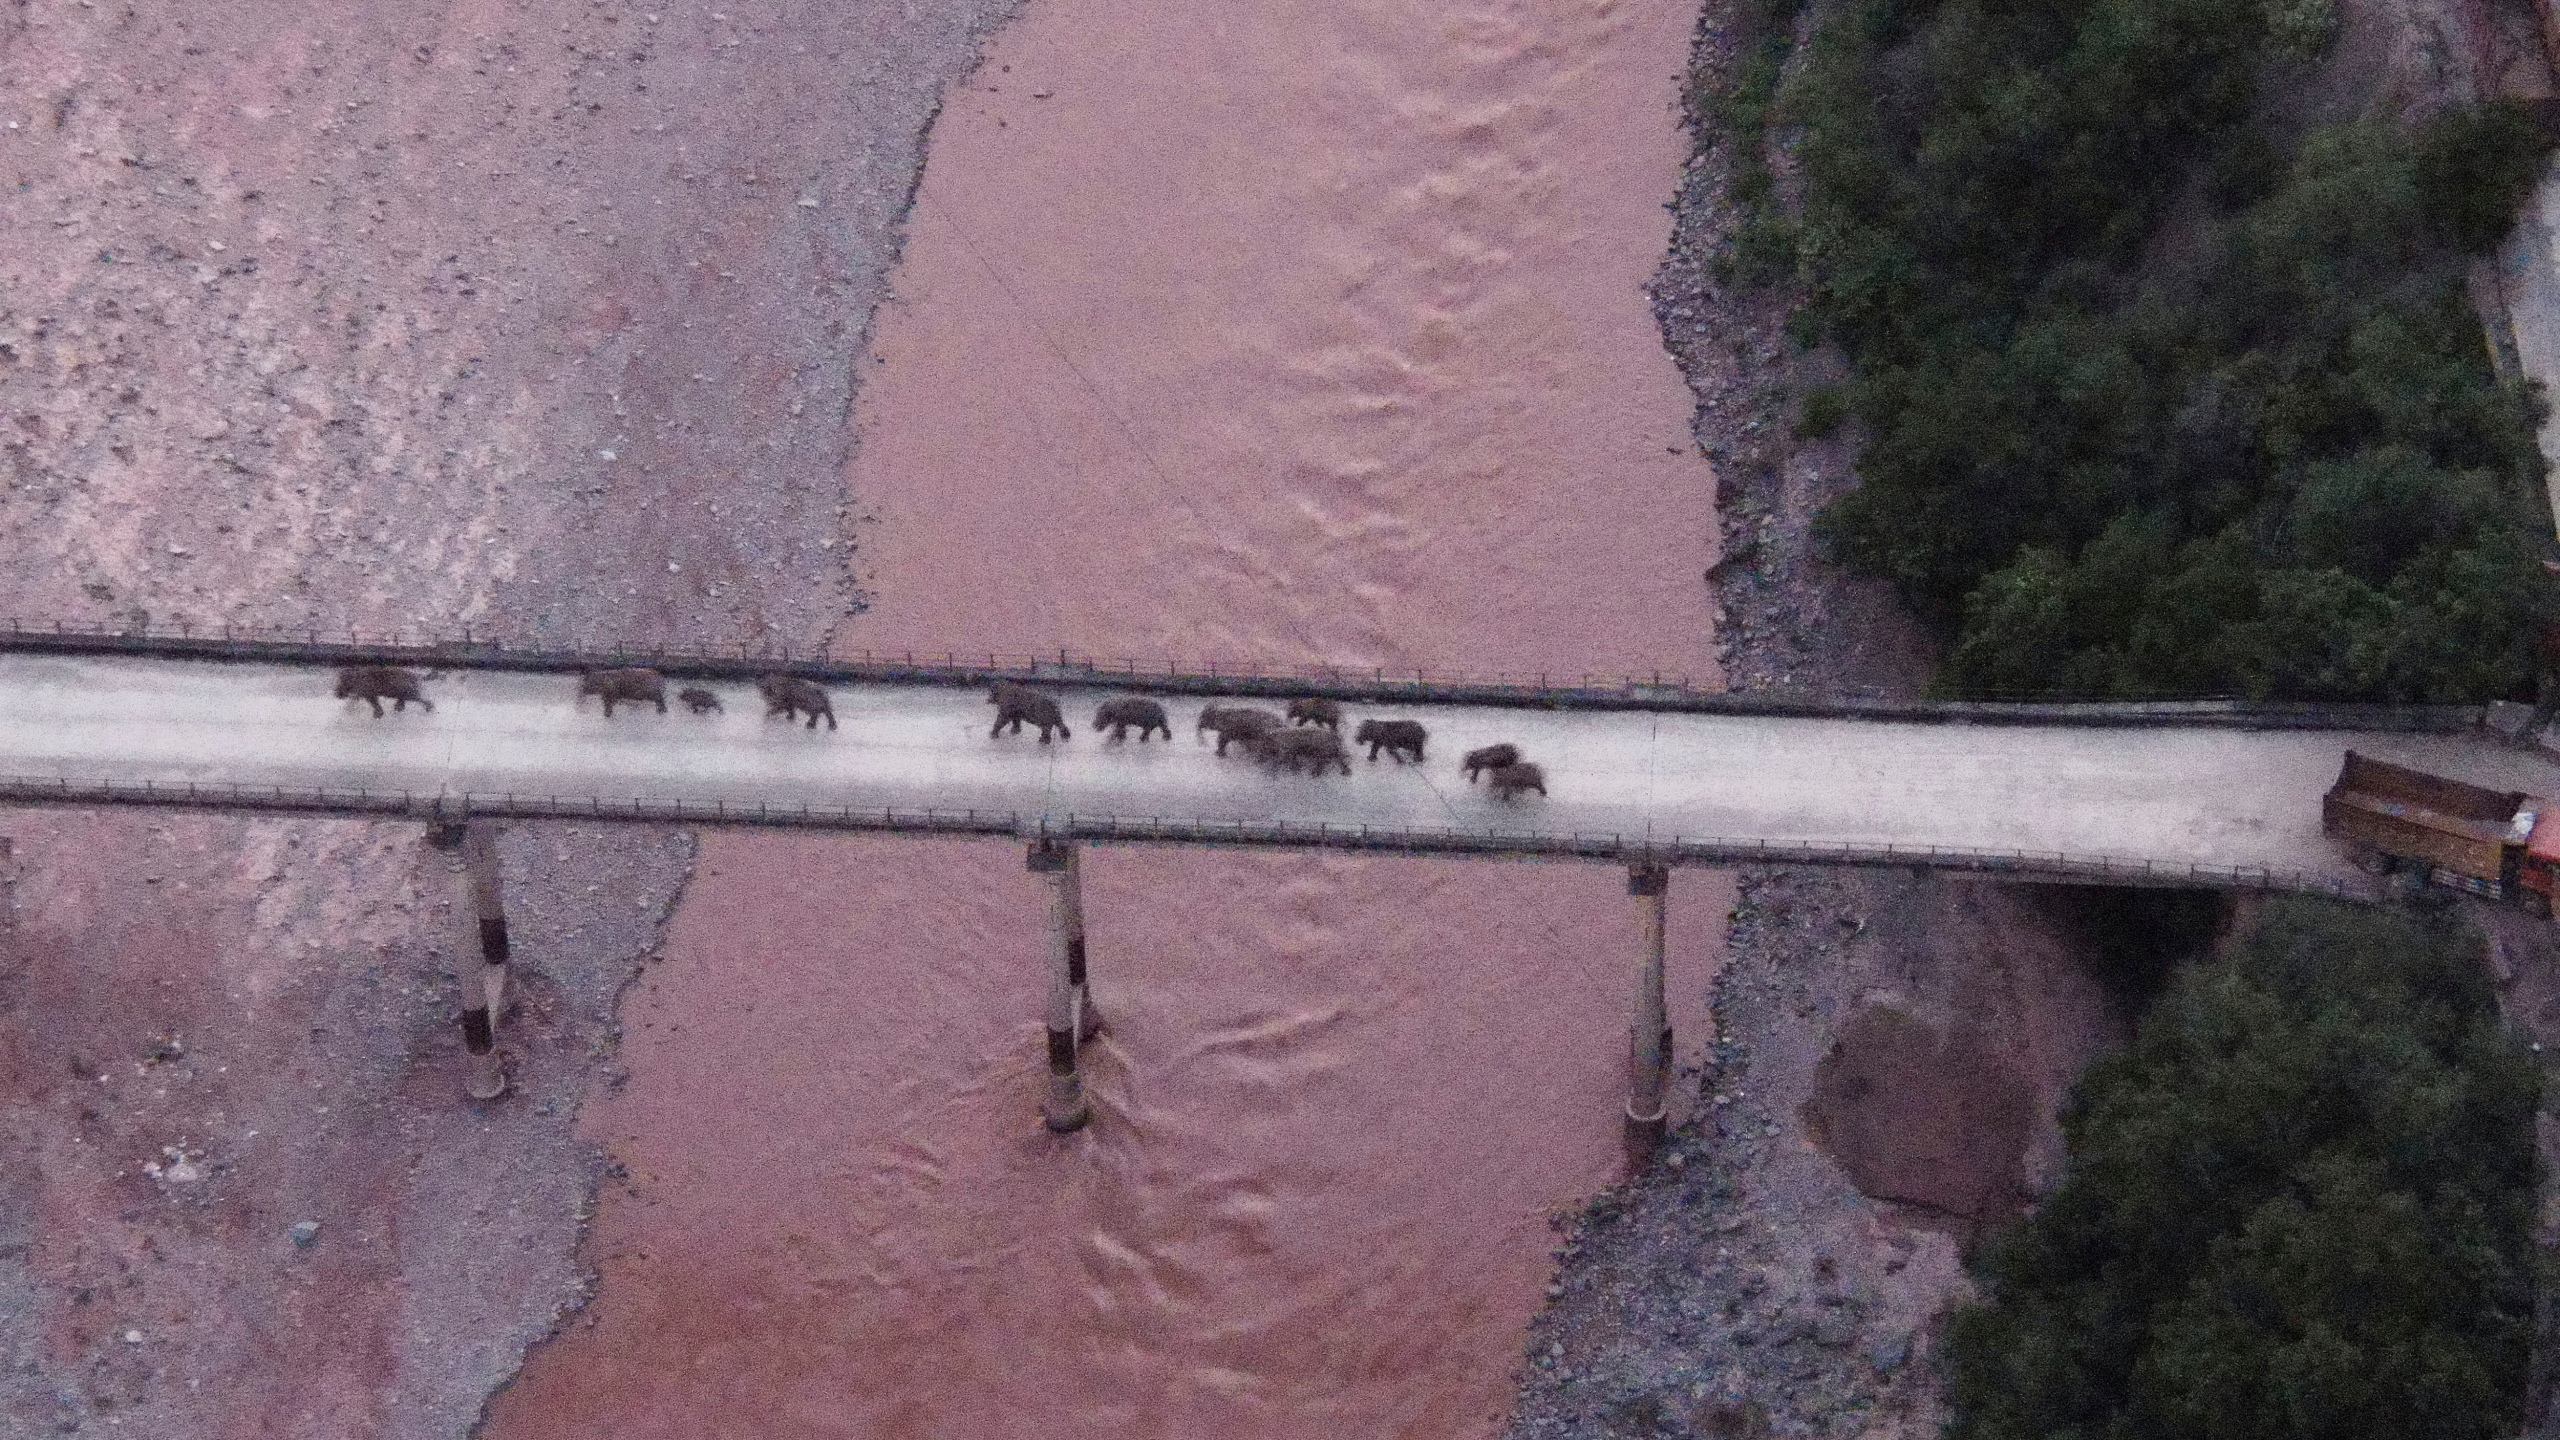 In this photo released by the Yunnan Provincial Command Center for the Safety and Monitoring of North Migrating Asian Elephants, a herd of wandering elephants cross a river using a highway near Yuxi city, Yuanjiang county in southwestern China's Yunnan Province on Aug. 8, 2021. (Via Associated Press)